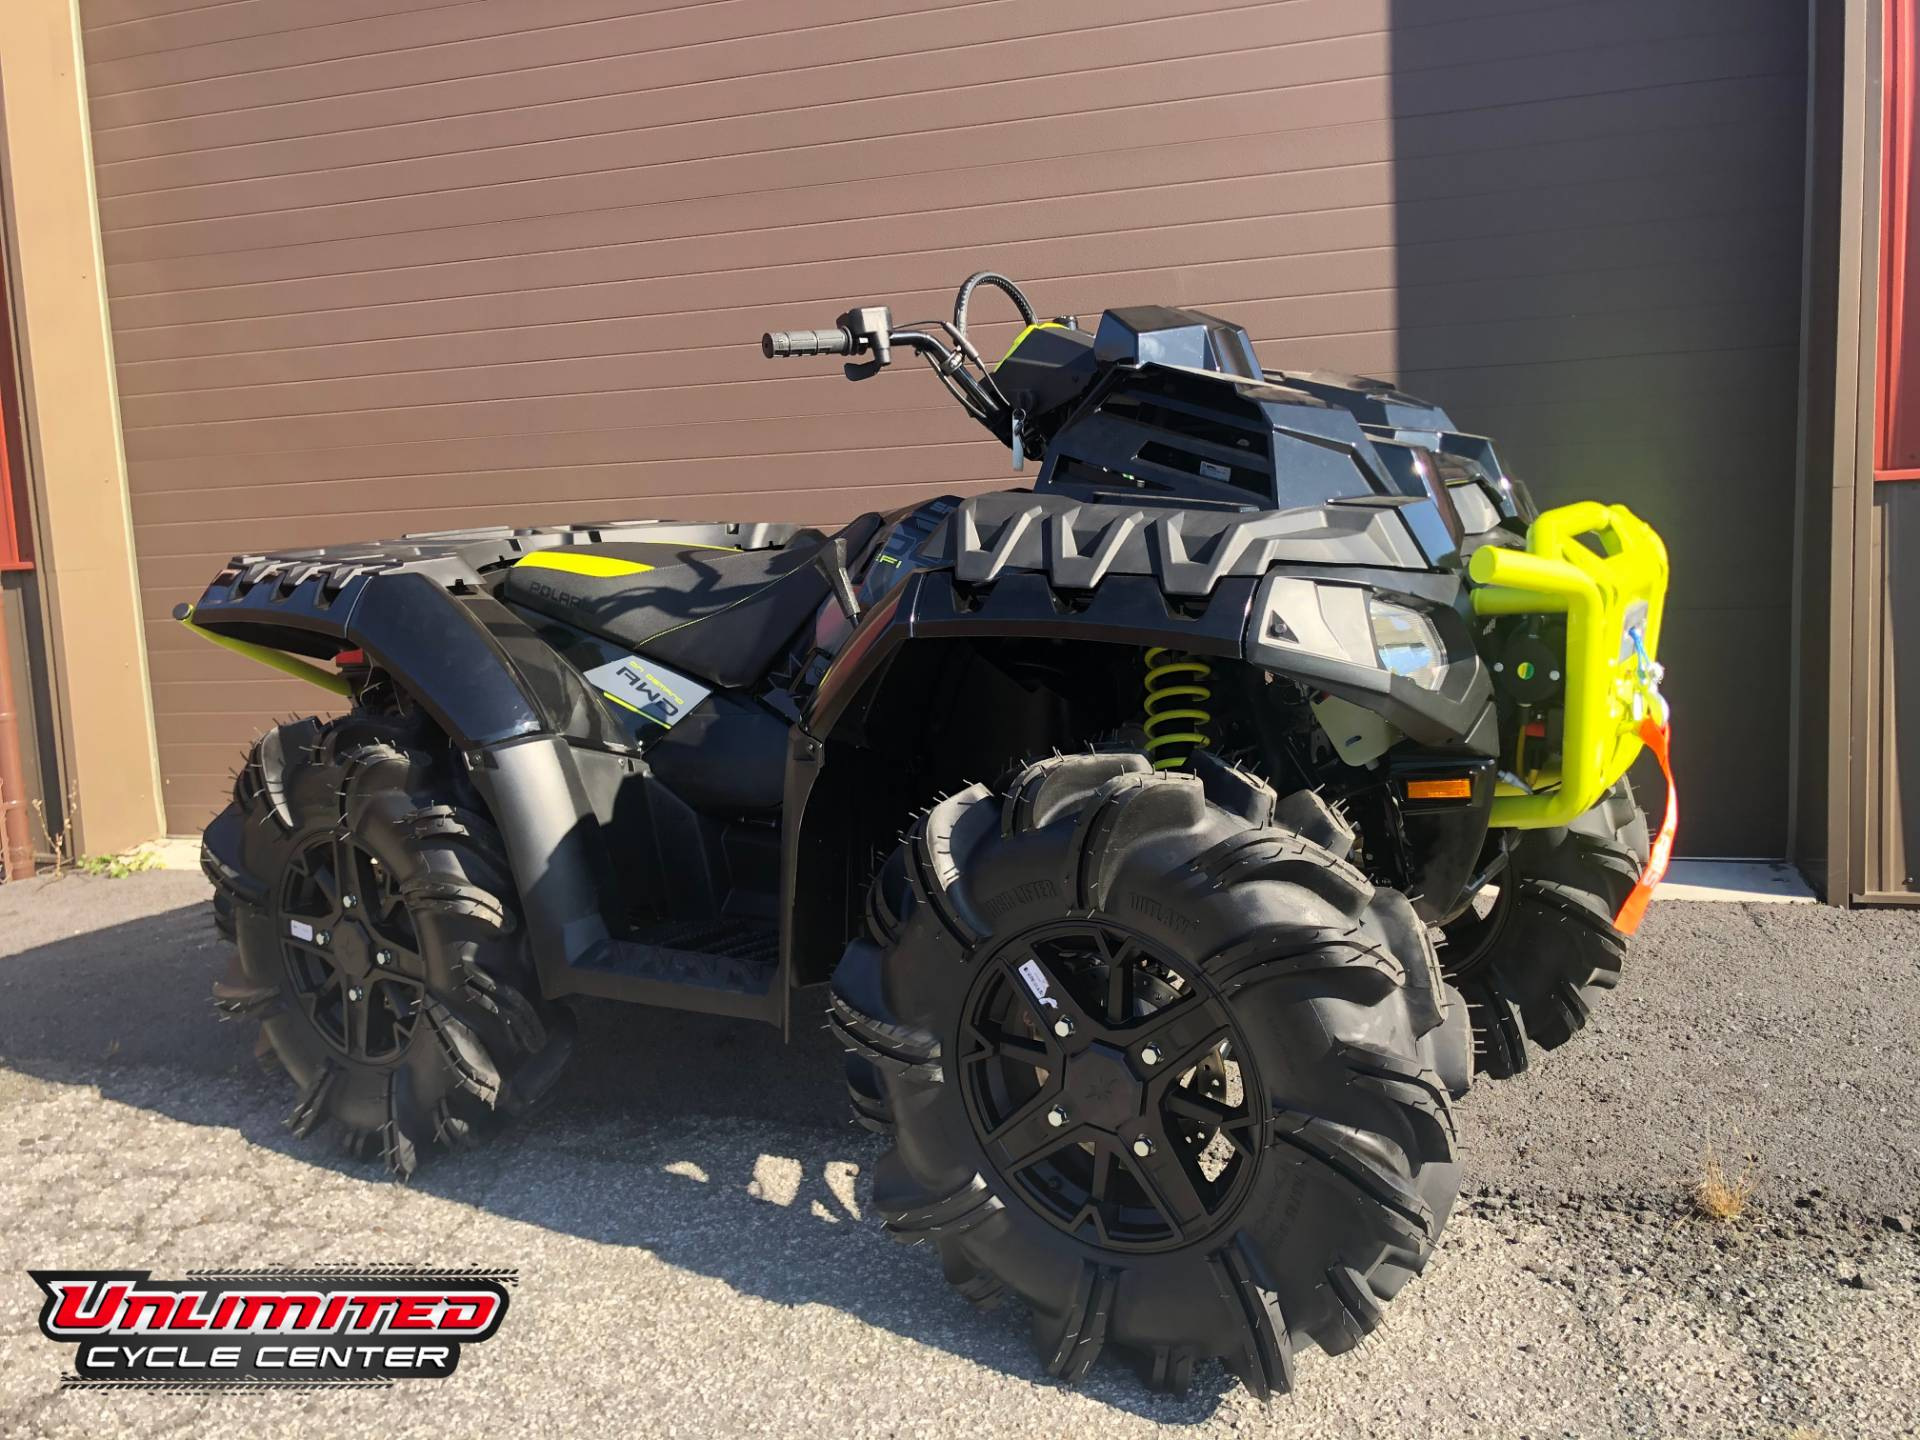 2020 Polaris Sportsman XP 1000 High Lifter Edition in Tyrone, Pennsylvania - Photo 1